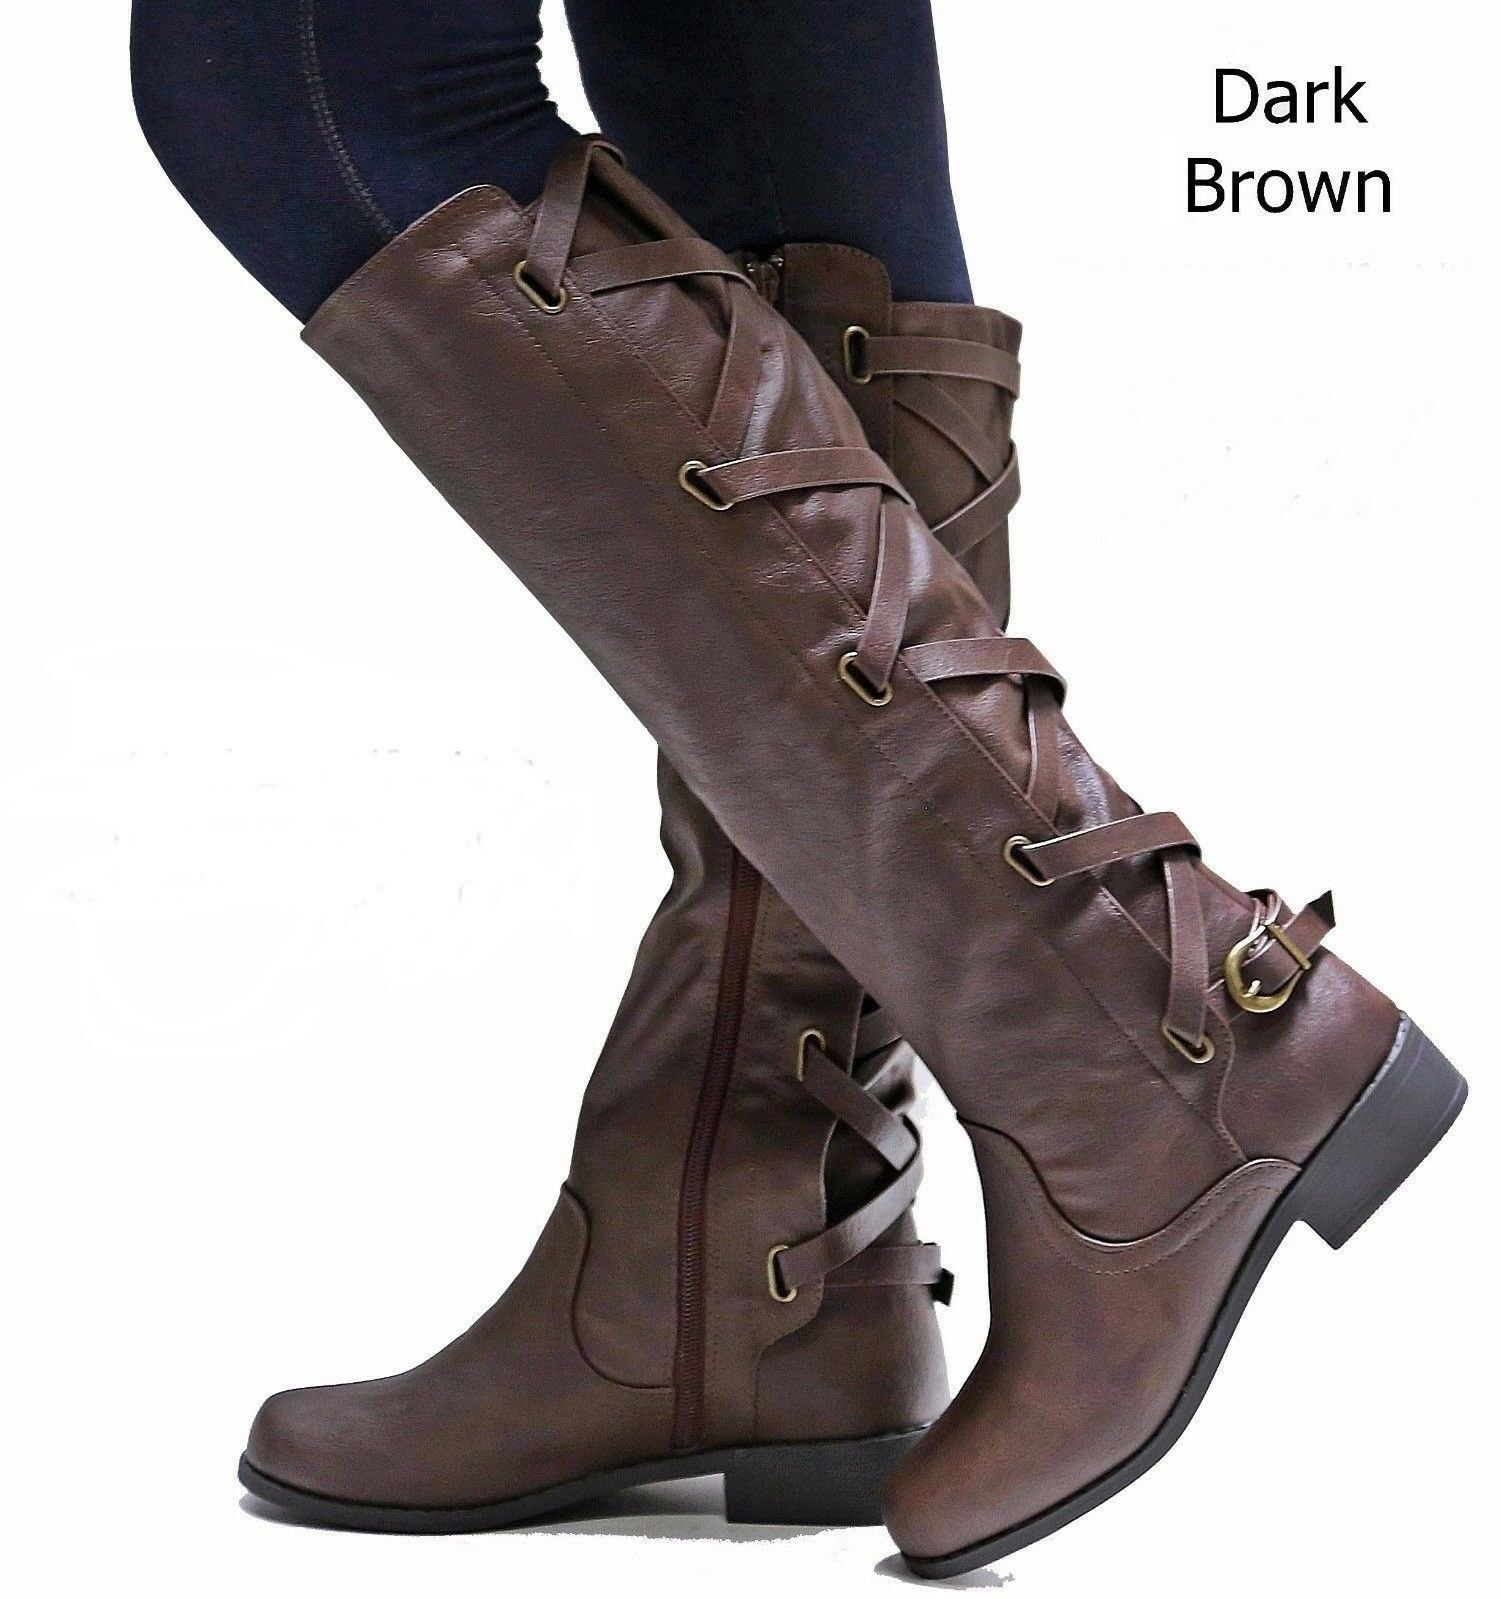 New Women Ecd Brown Black Buckle Riding Knee High Cowboy Boots 5.5 to 11